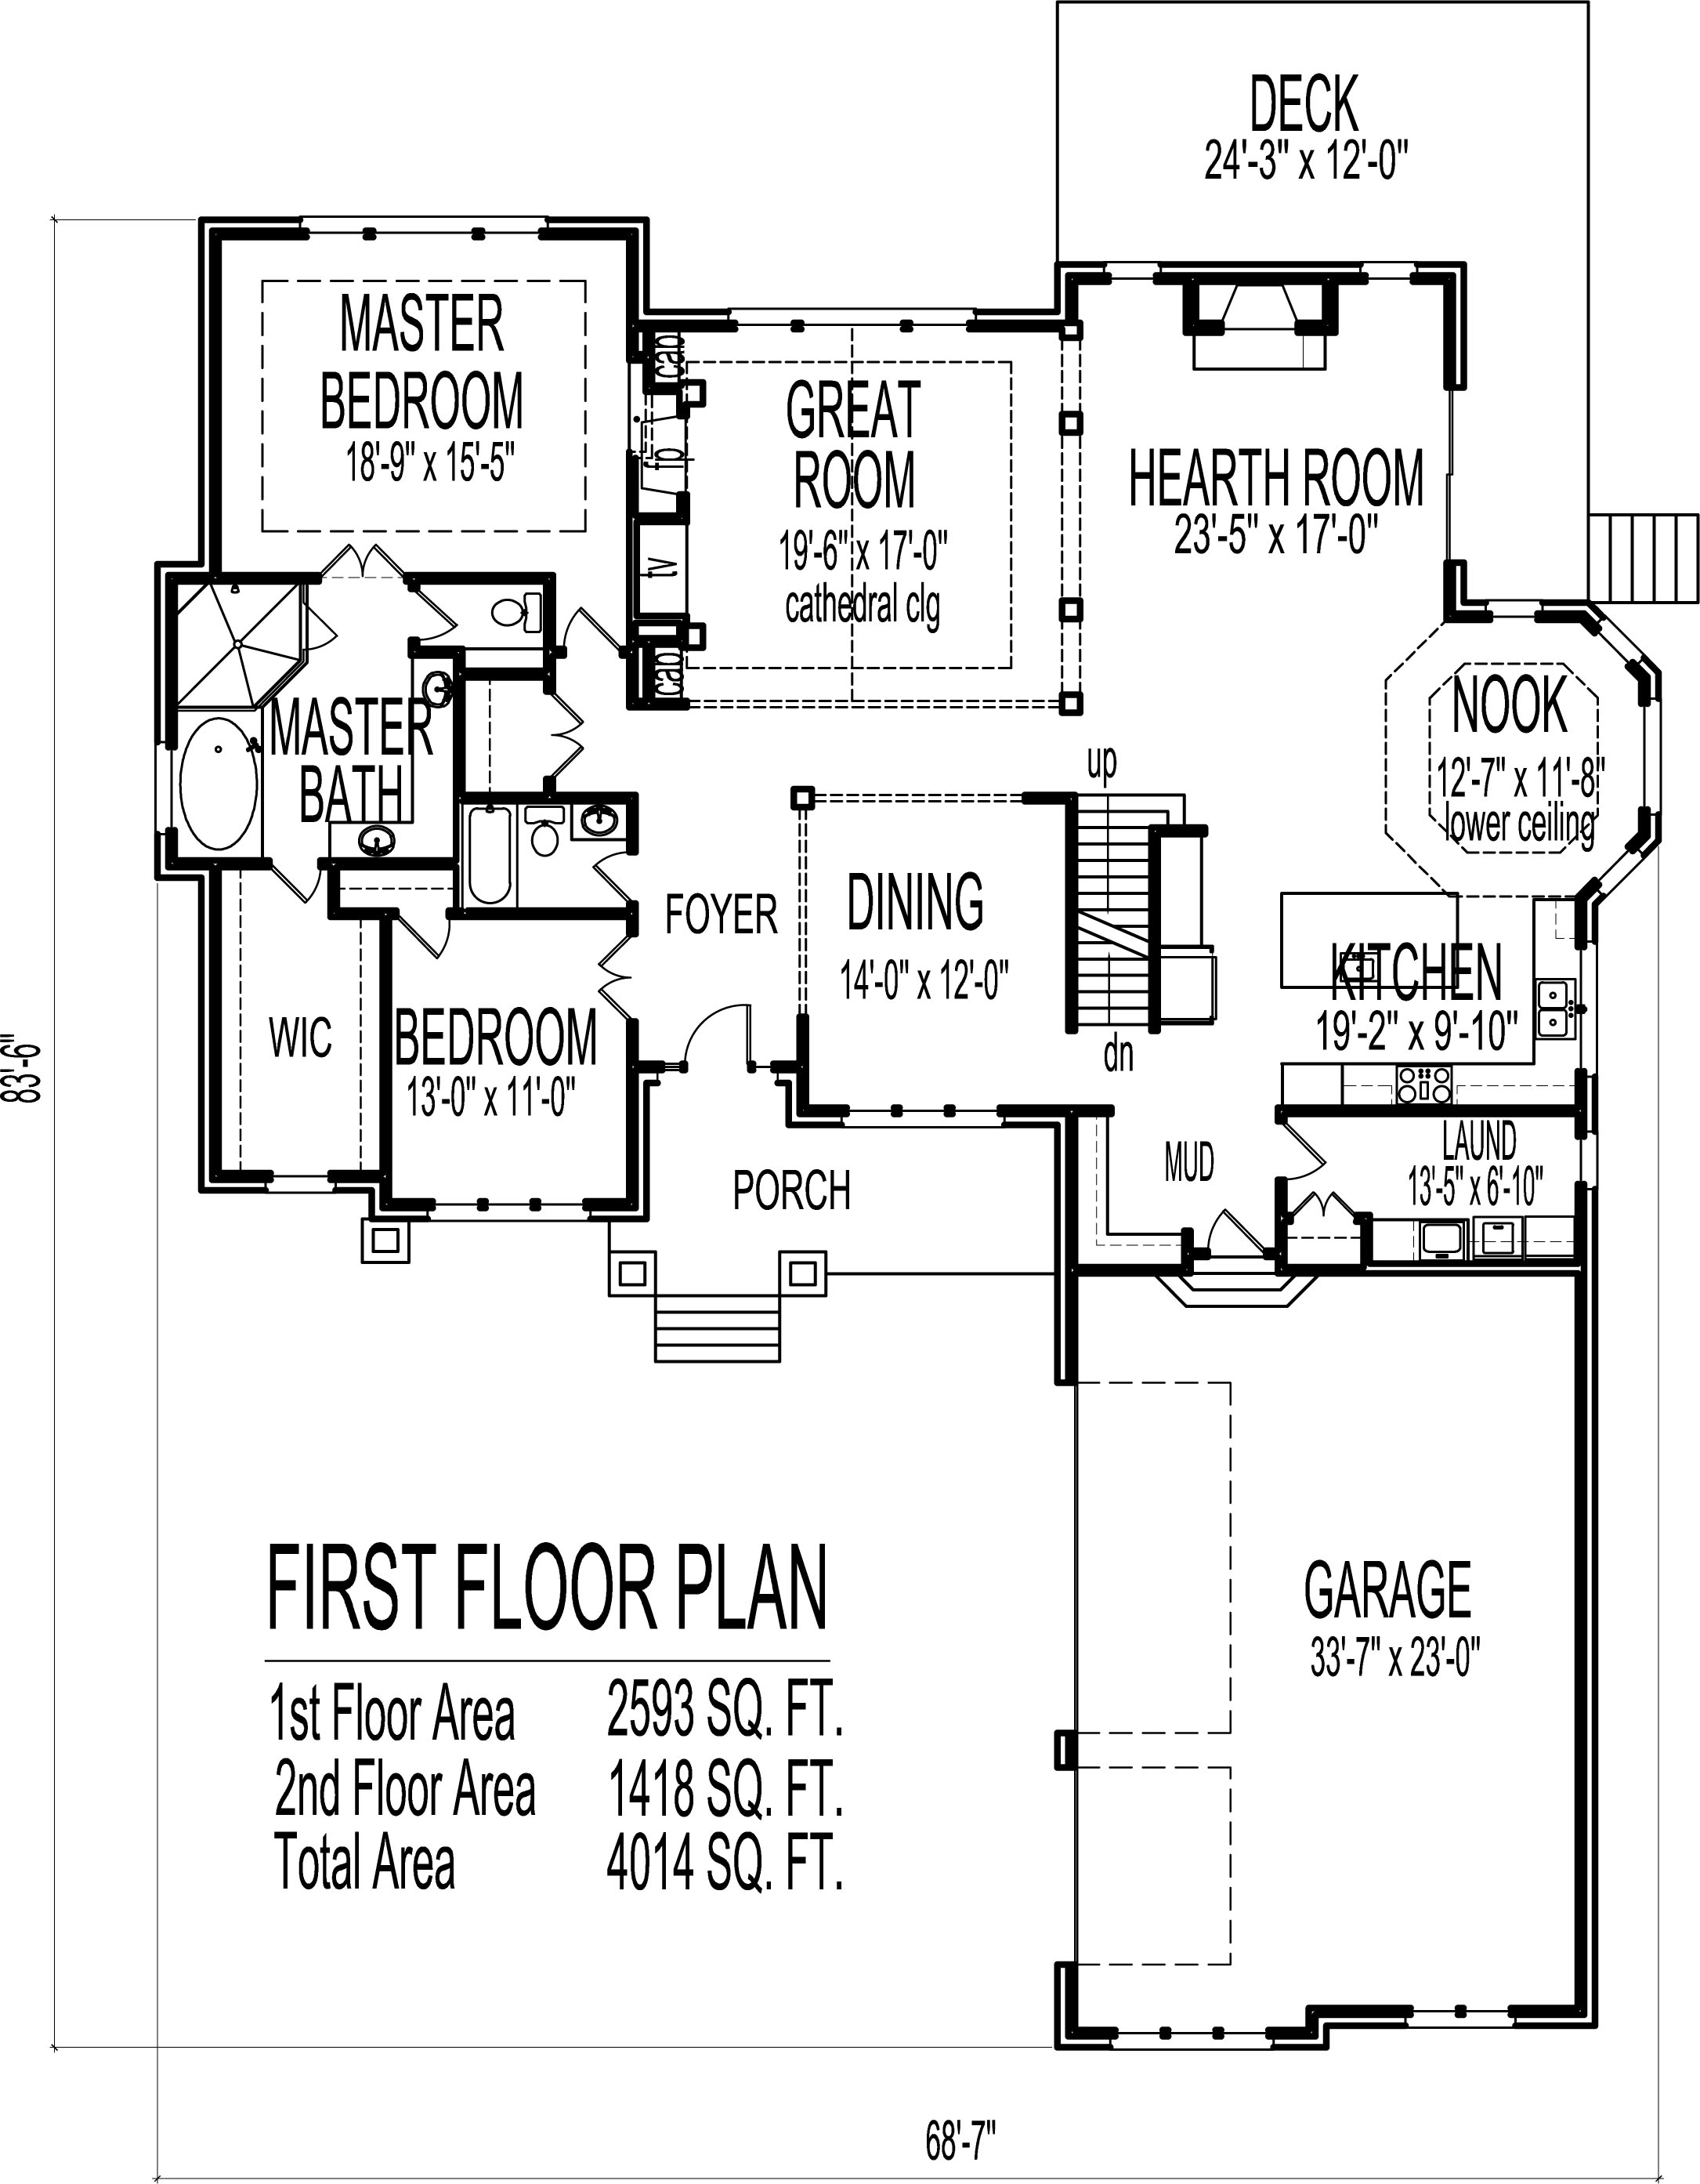 2 story house floor plans 6 bedroom craftsman home design for 6 bed house plans